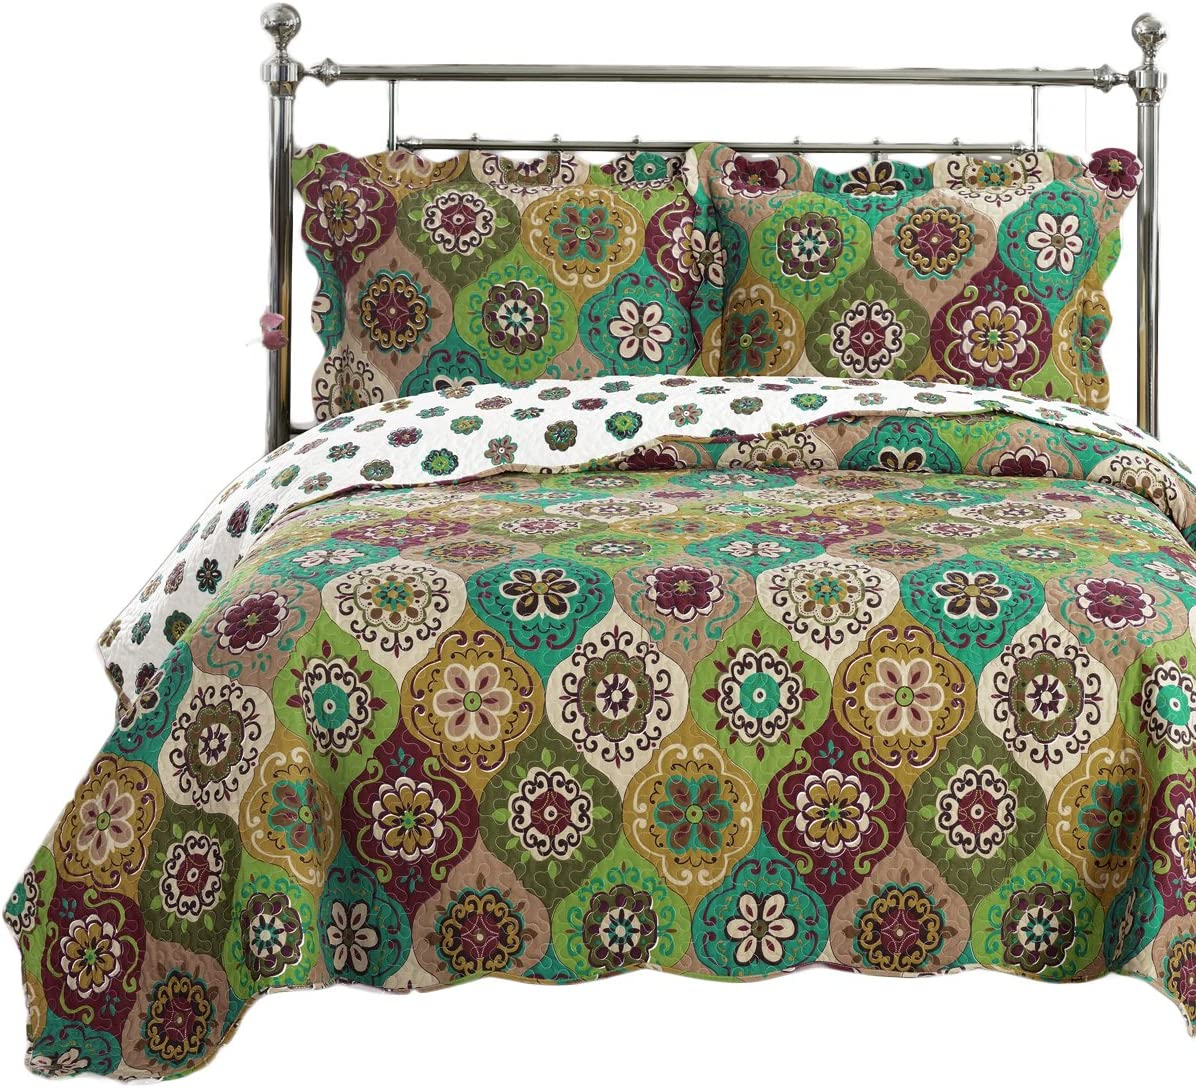 Royal Tradition Bonnie Printed Microfiber Oversized King-California King 3PC Quilt Set, Shades of Green, Gold and Burgundy